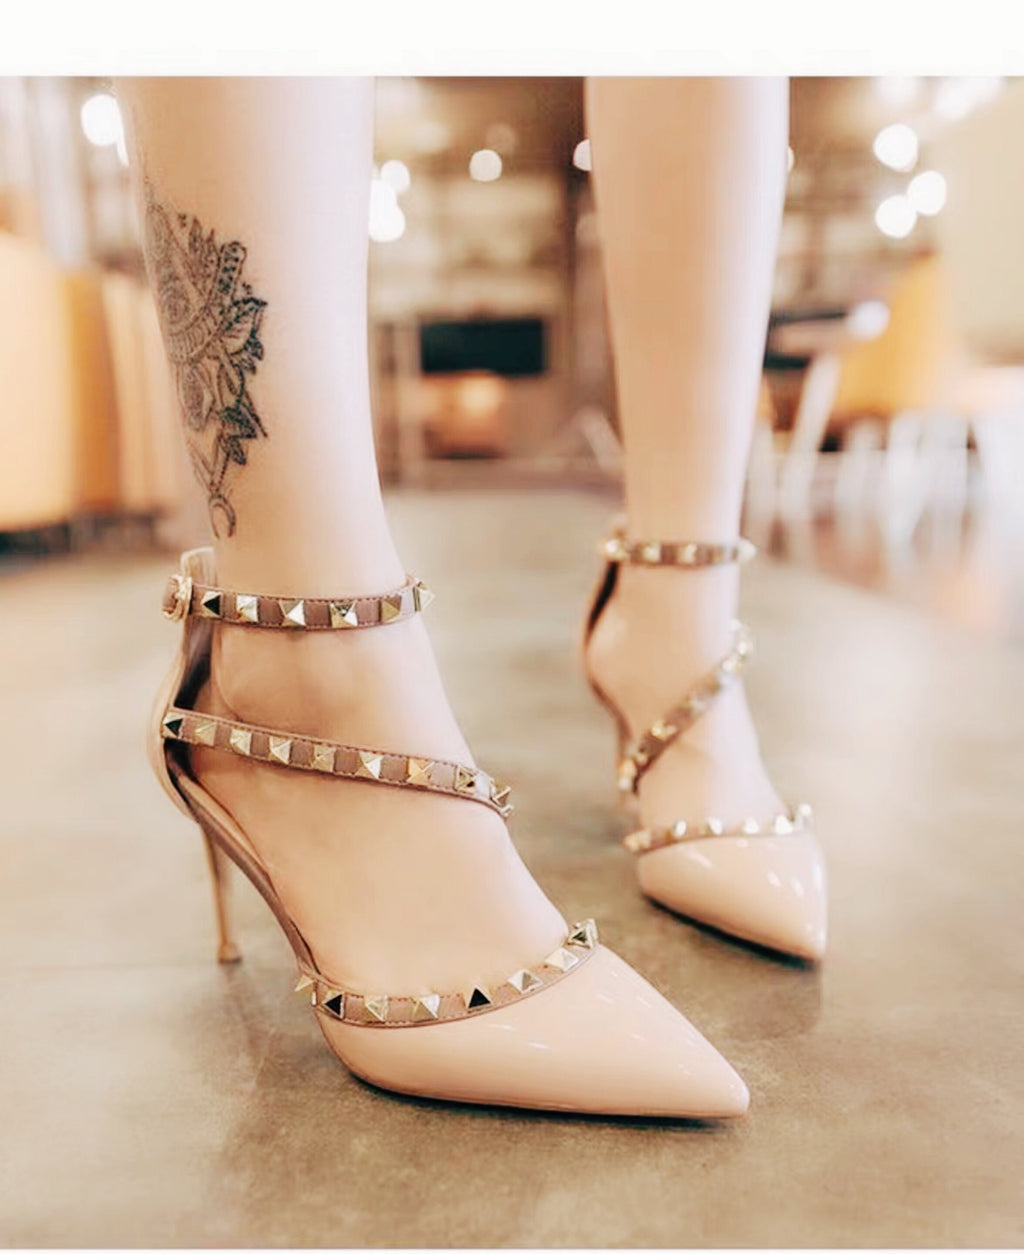 Shoes - New Fashion Rivet Pointed Strap Sandals Shoes In Five Colors